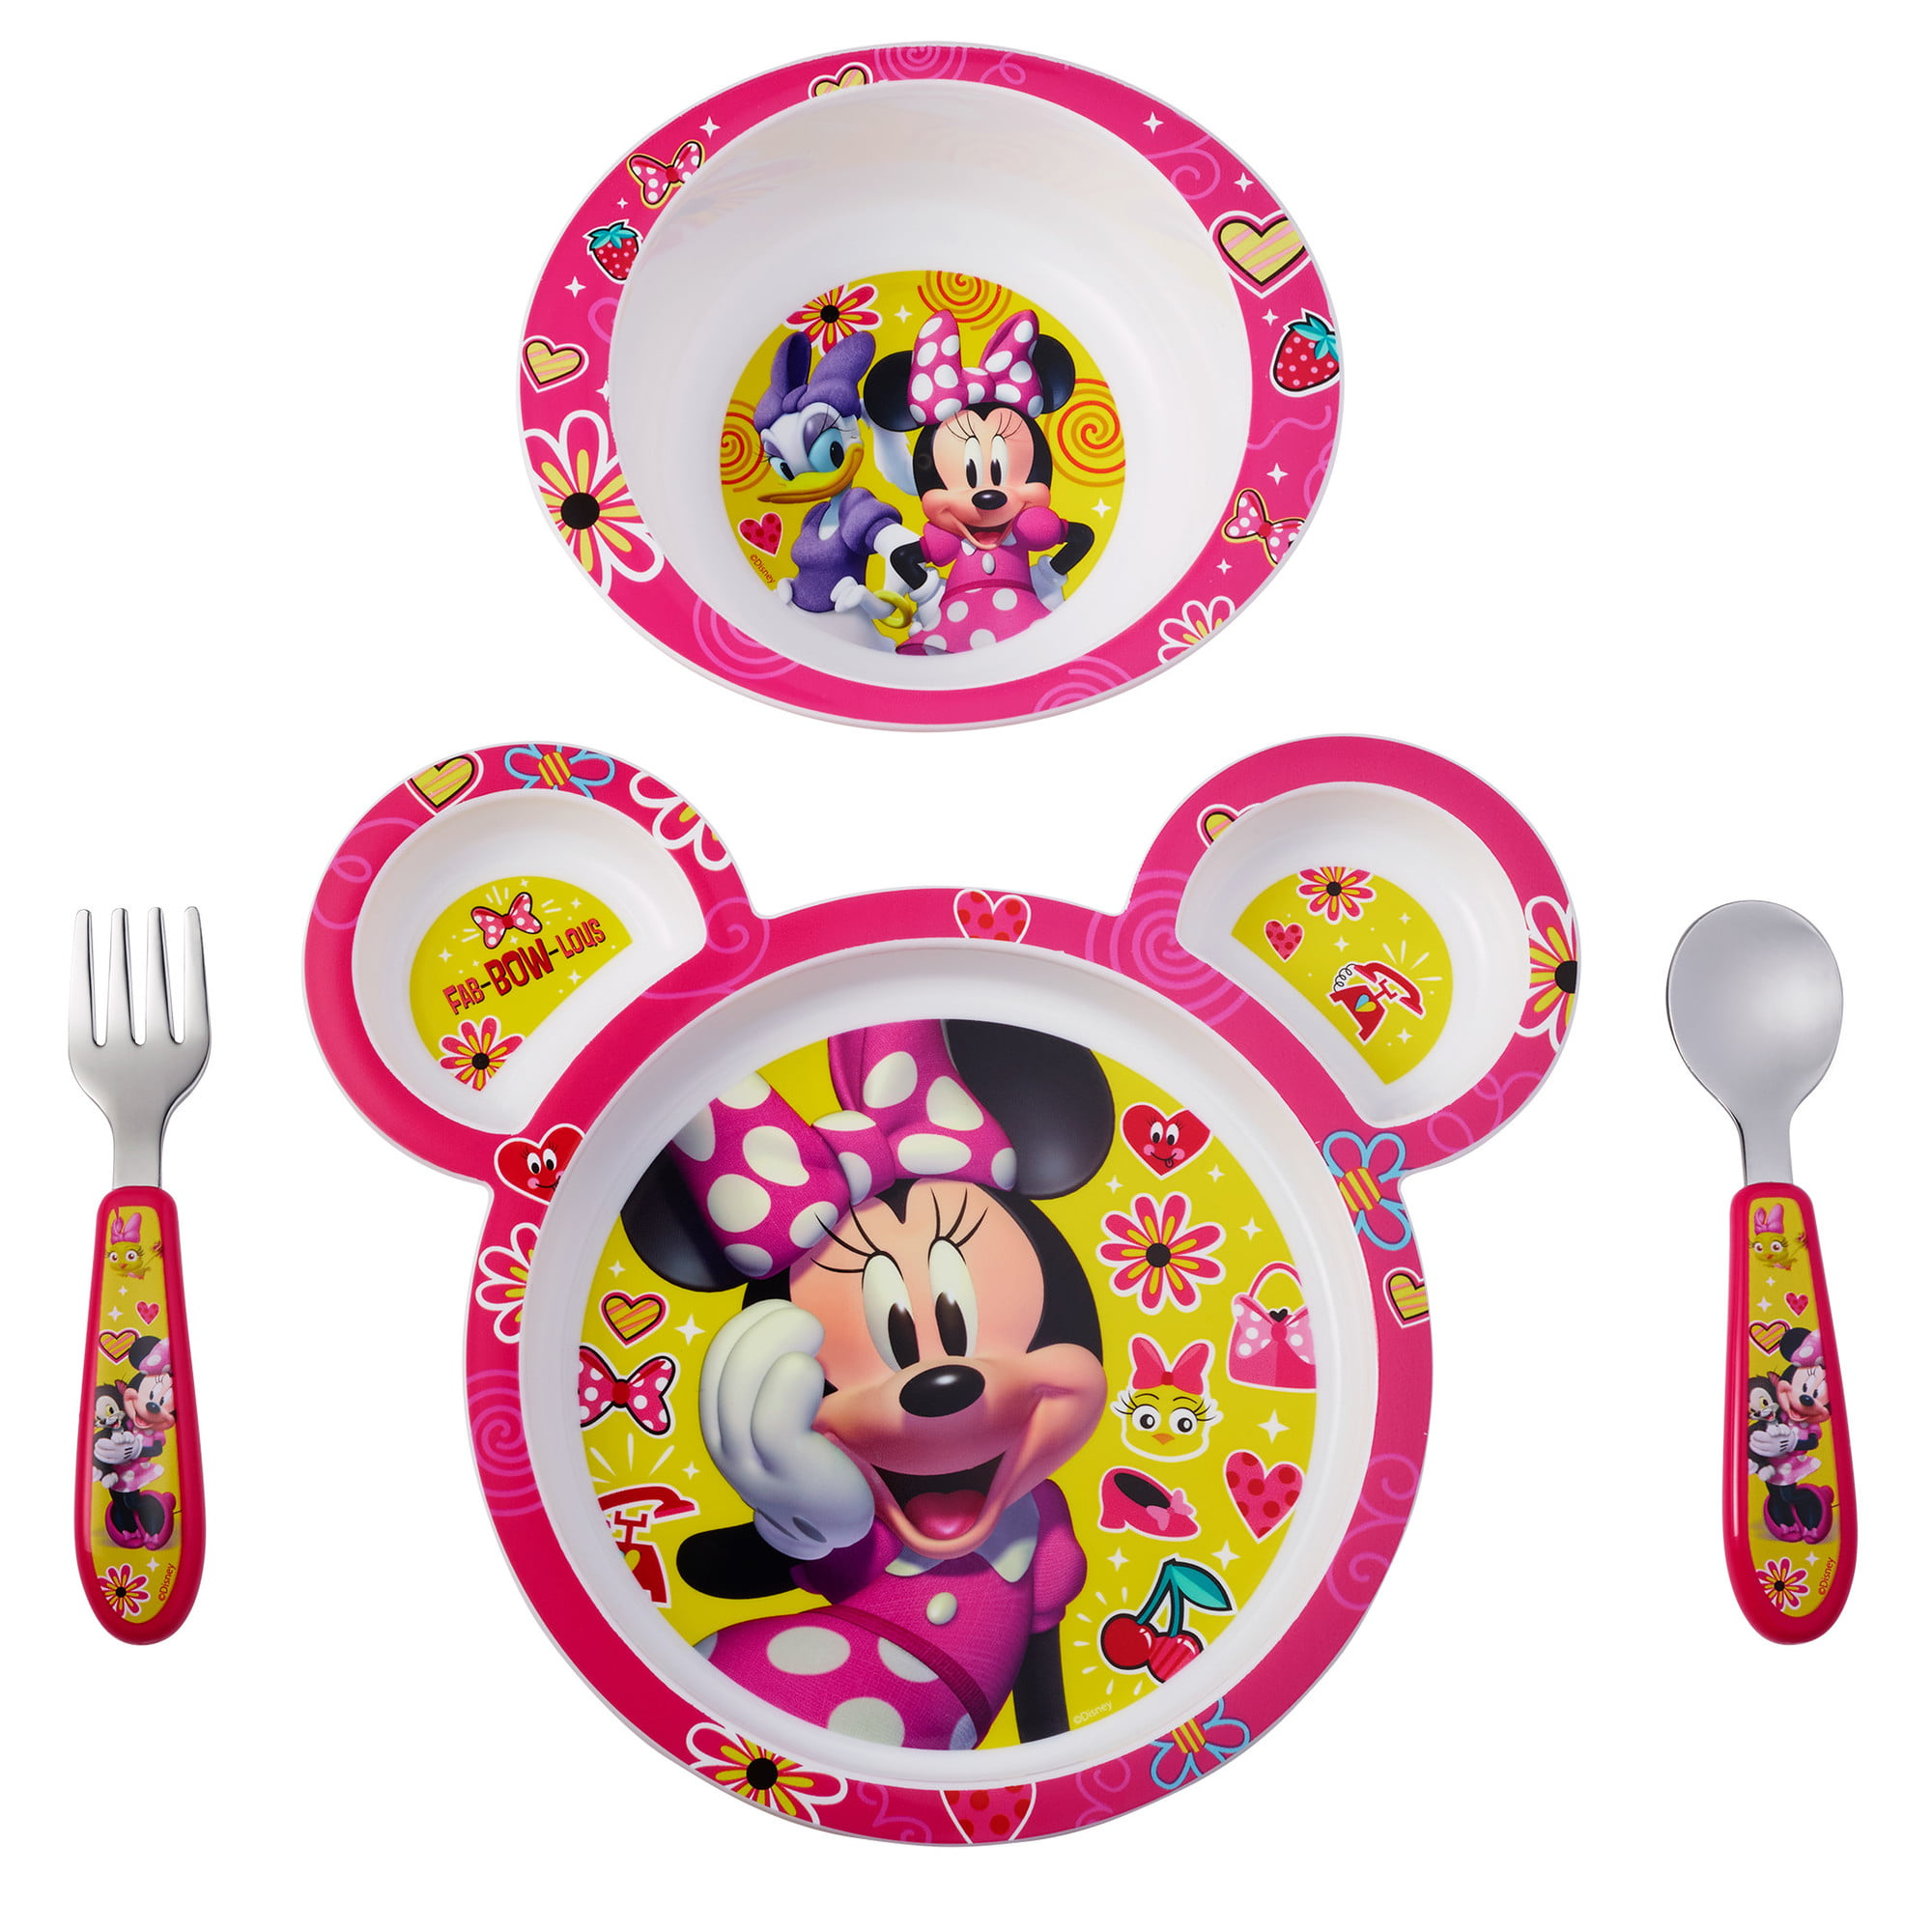 Disney Minnie Lunch Plates Birthday Party Disposable Tableware and Dishware Multi Color 8 Pack 9 x 9.